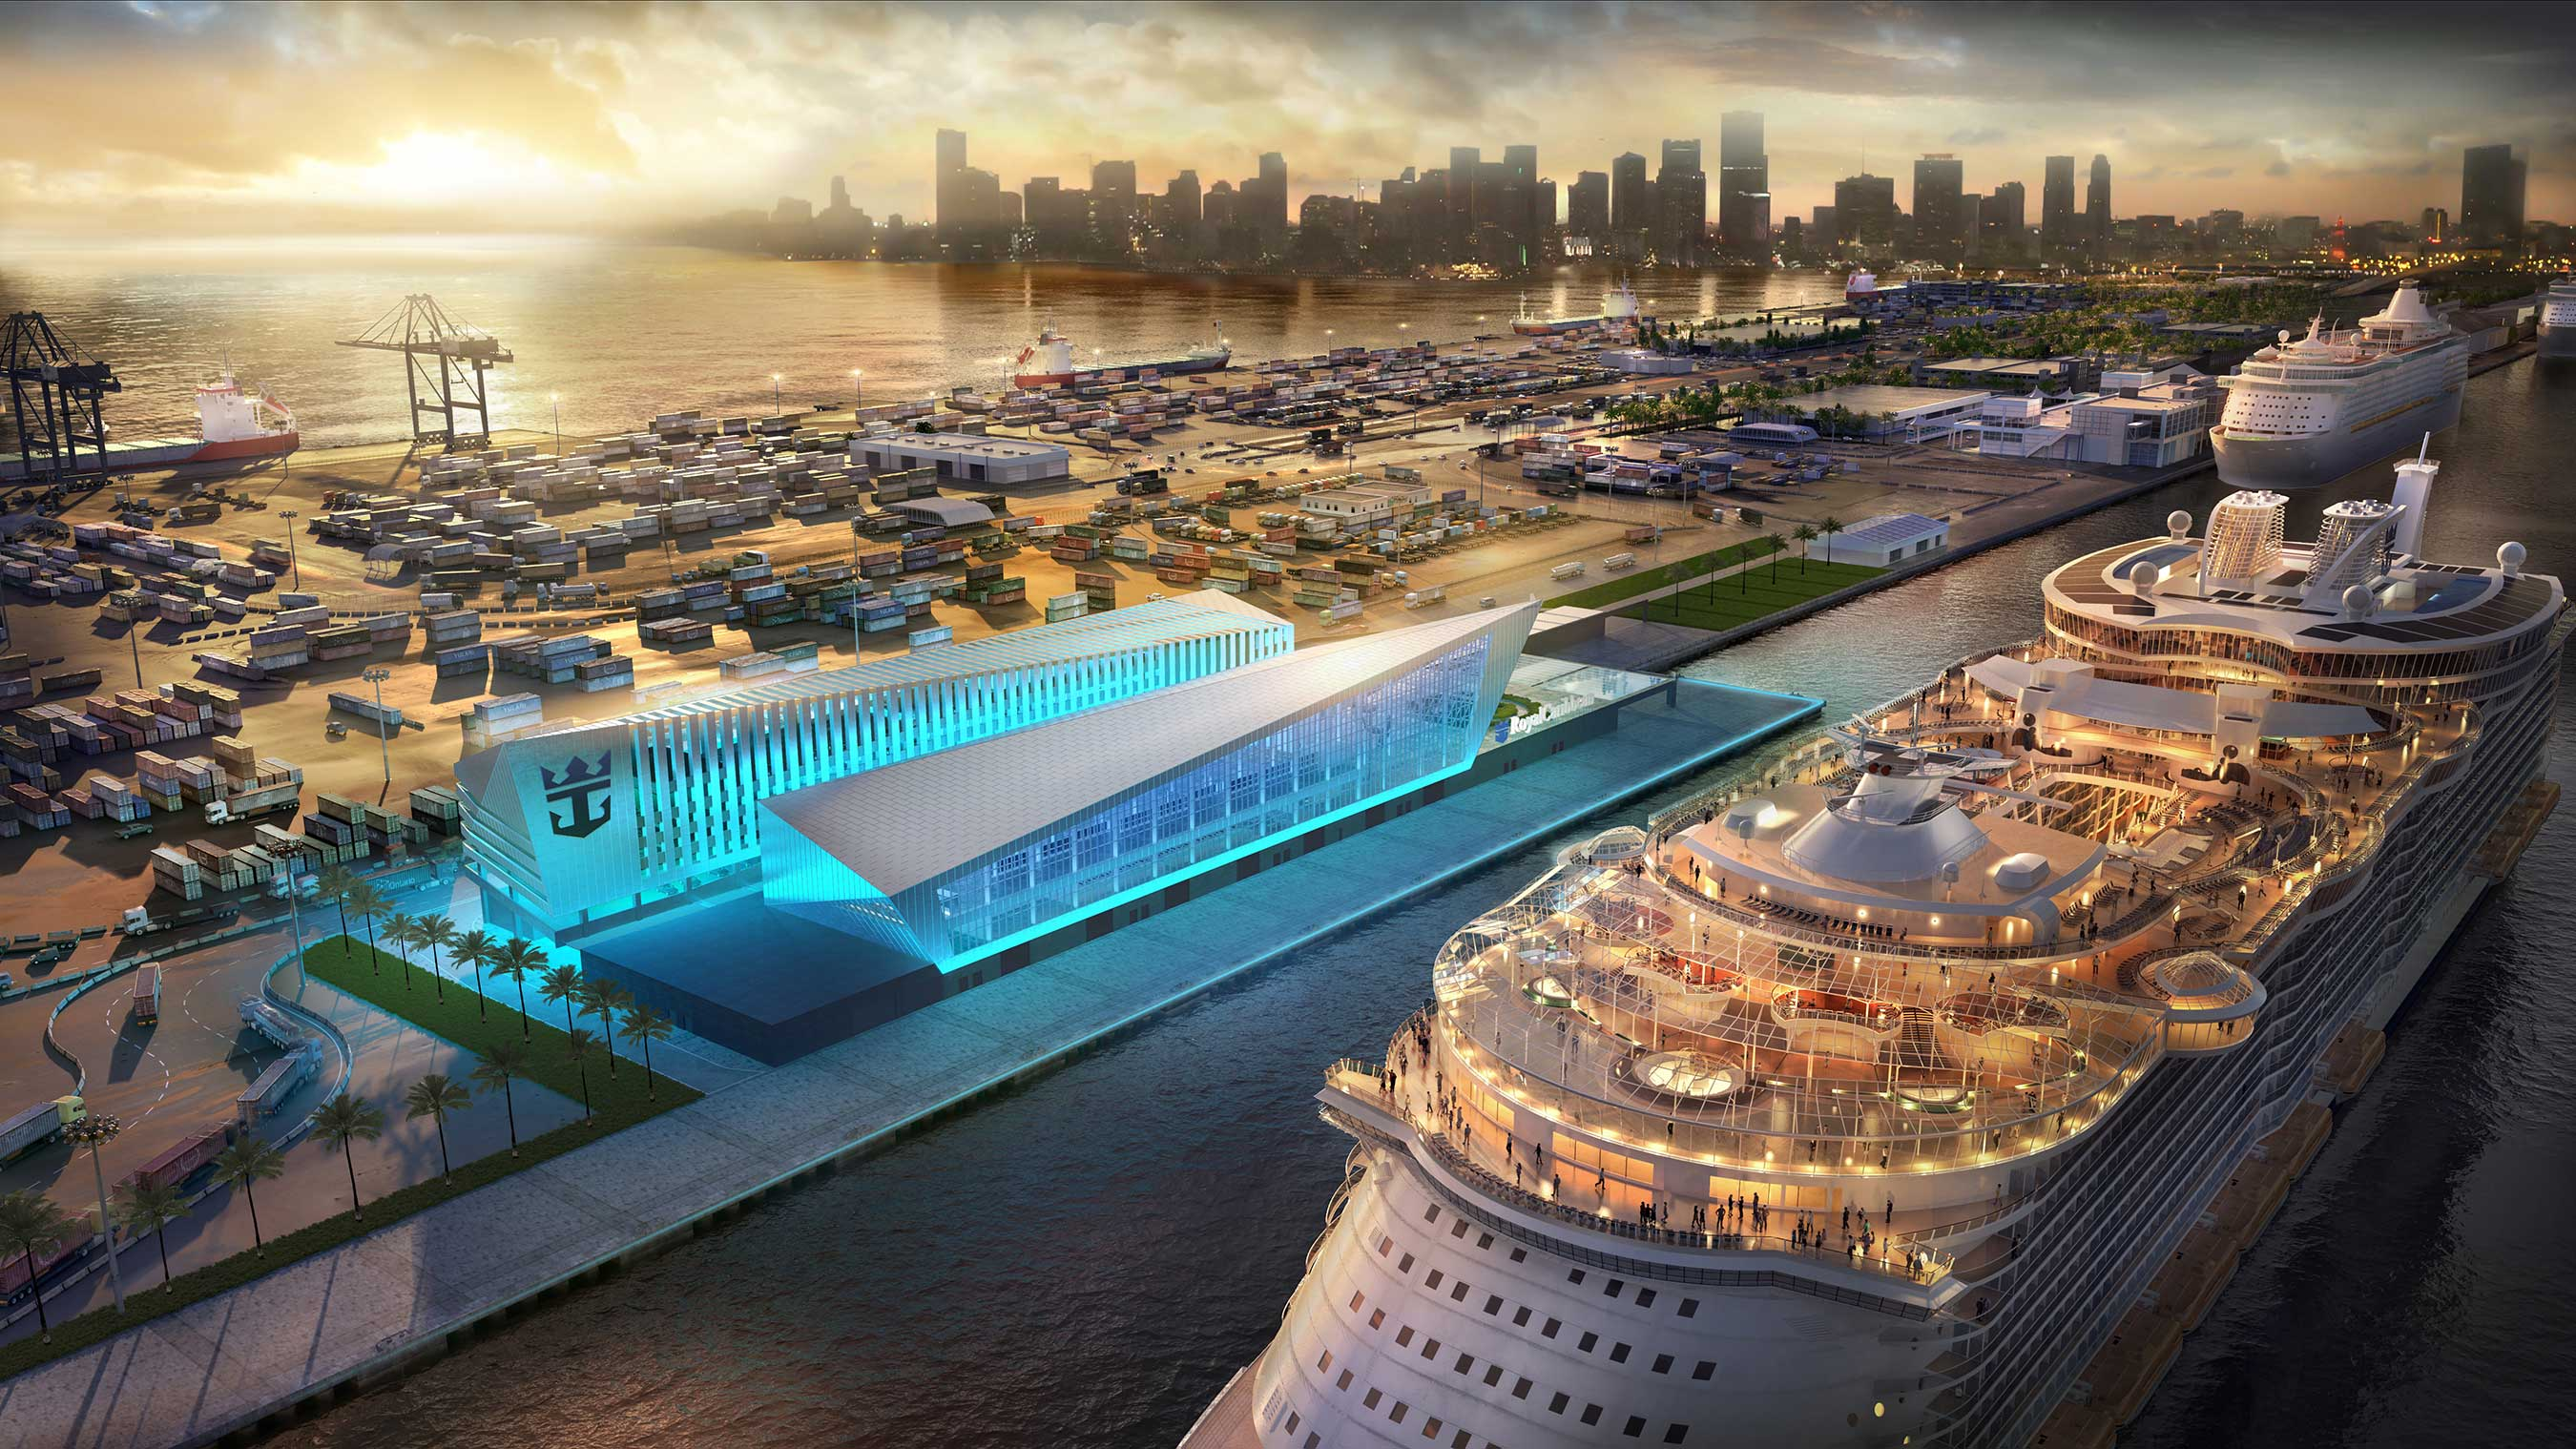 Royal Caribbean Cruises Ltd. (RCL), in agreement with Miami-Dade County, will build and operate a new, world-class terminal at PortMiami. The iconic building is scheduled for late 2018. Image: Royal Caribbean